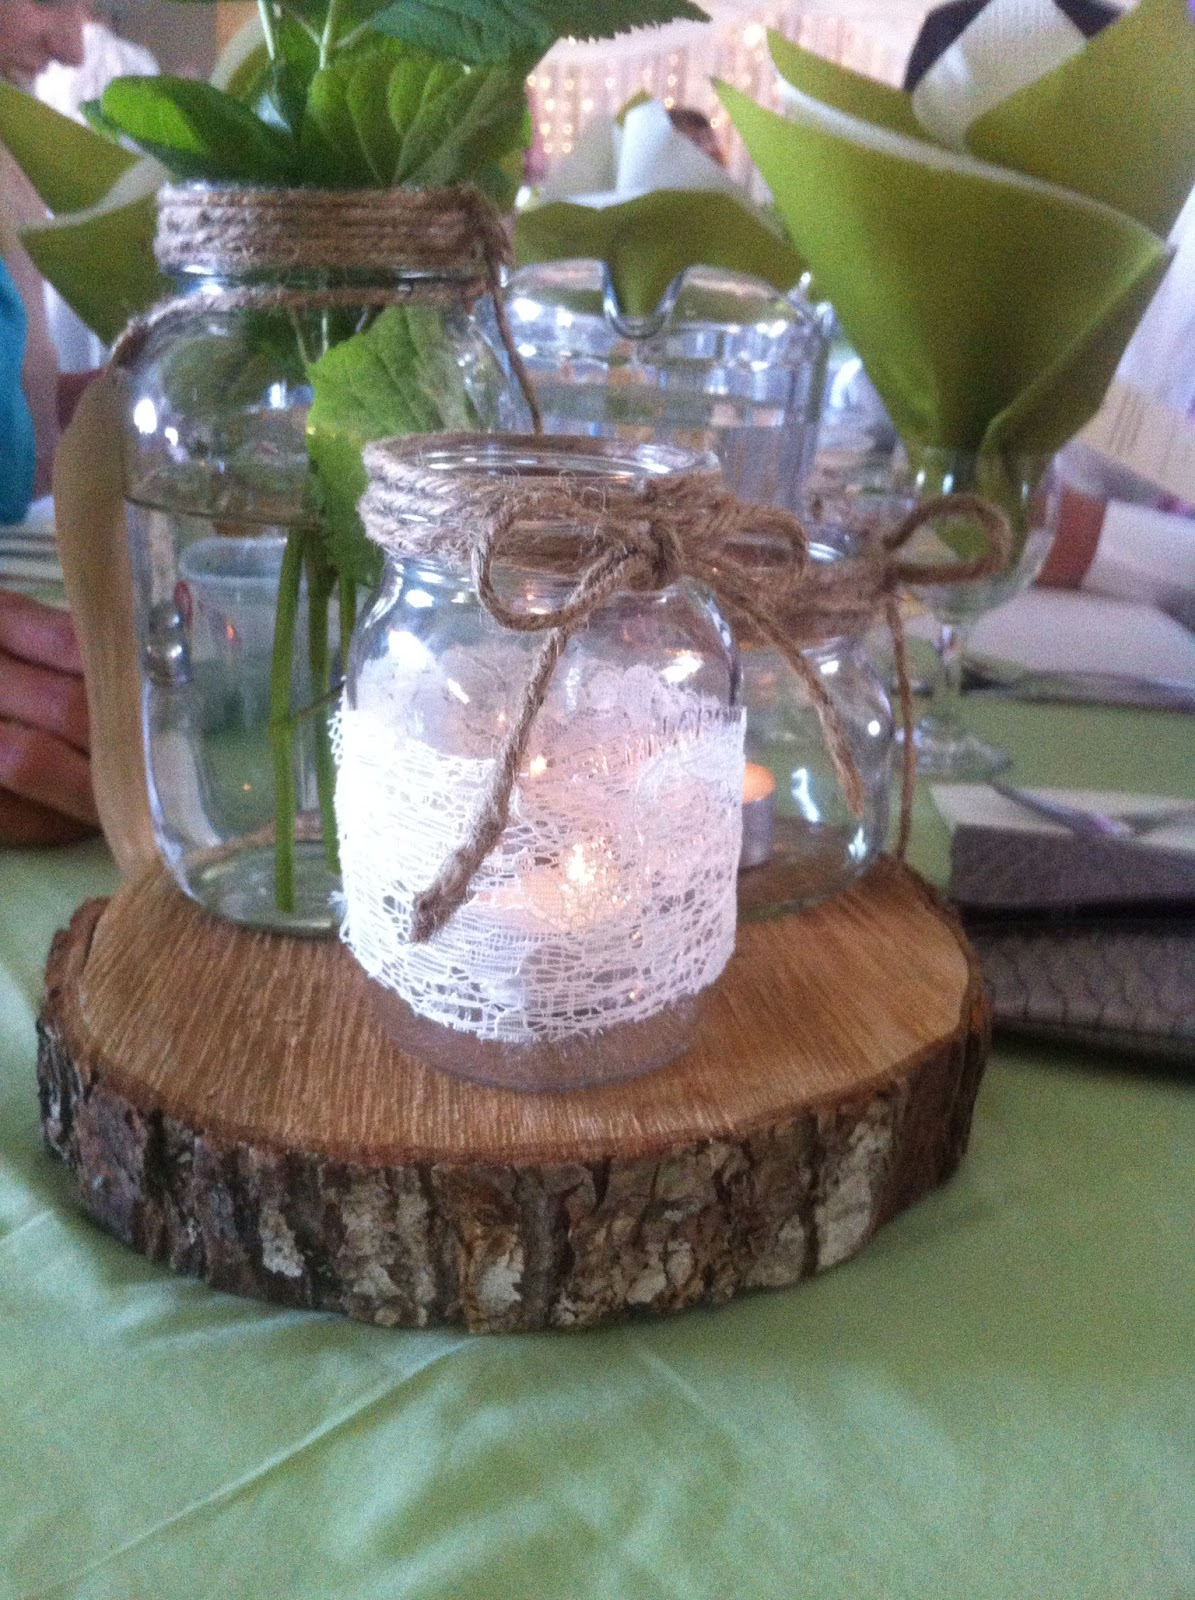 Diy pinner crafts wedding decor rustic vintage